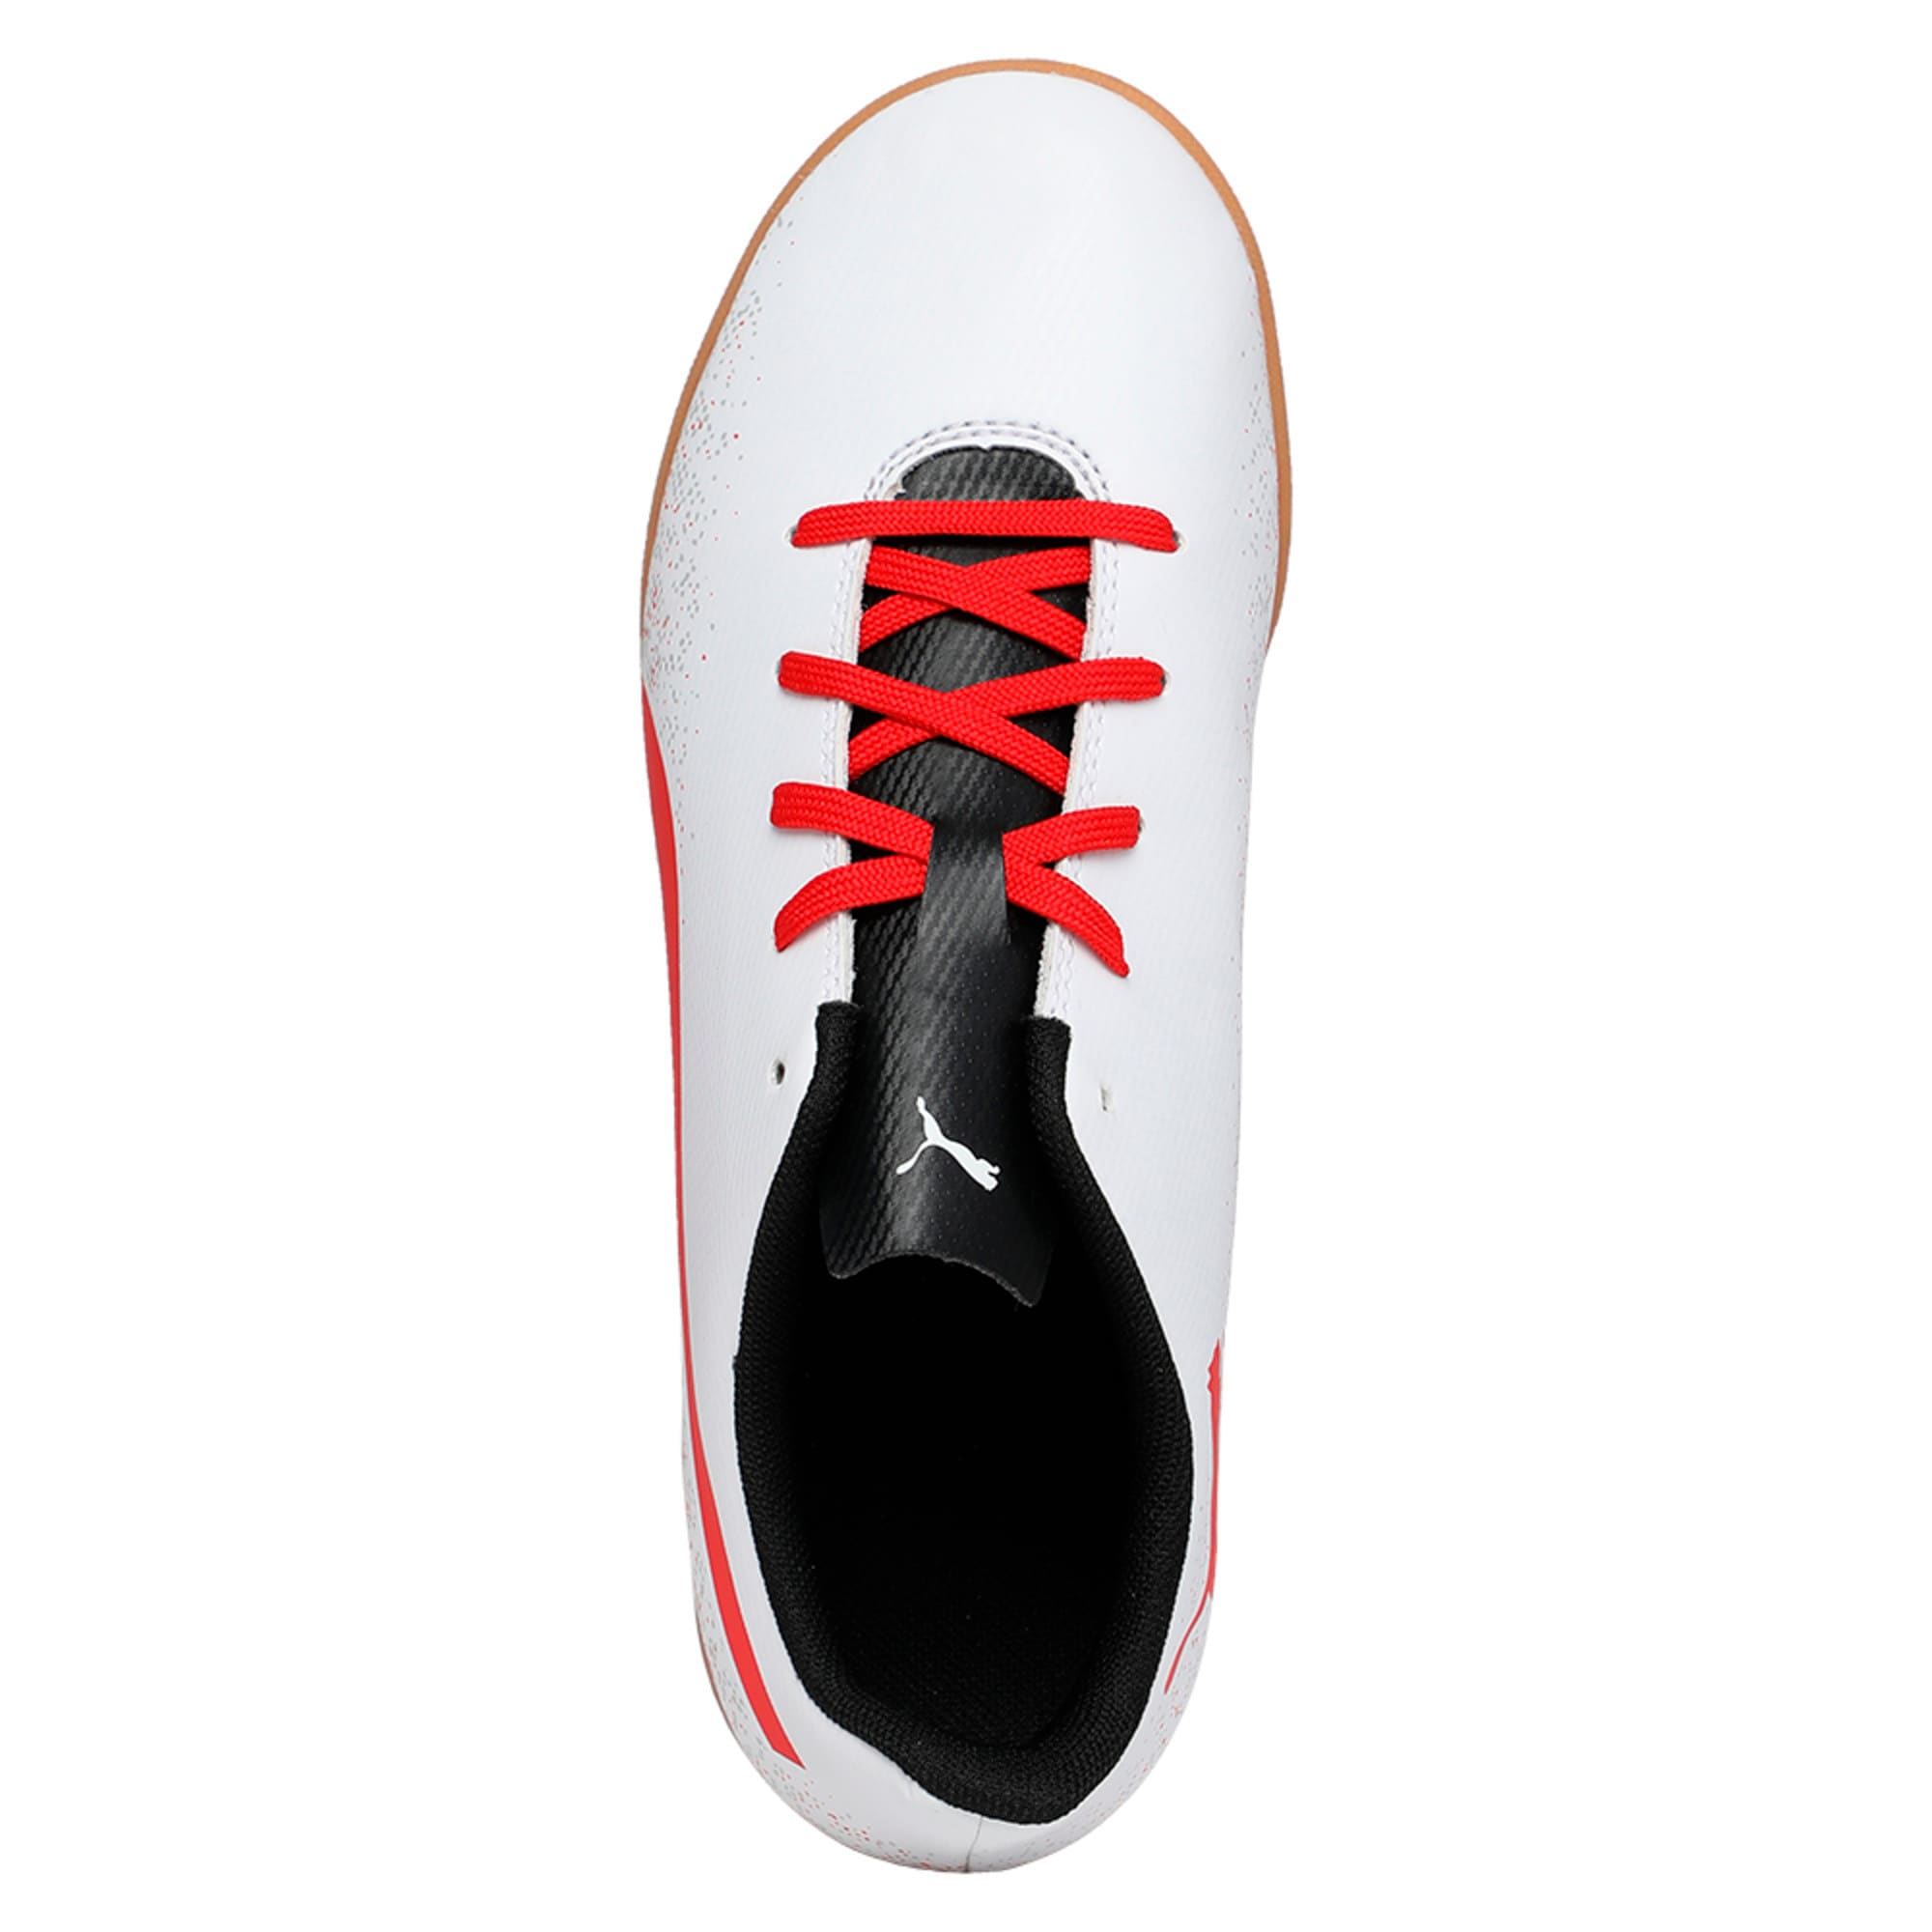 Thumbnail 3 of Truora IT Kids' Indoor Training Shoes, White-Flame Scarlet-Black, medium-IND